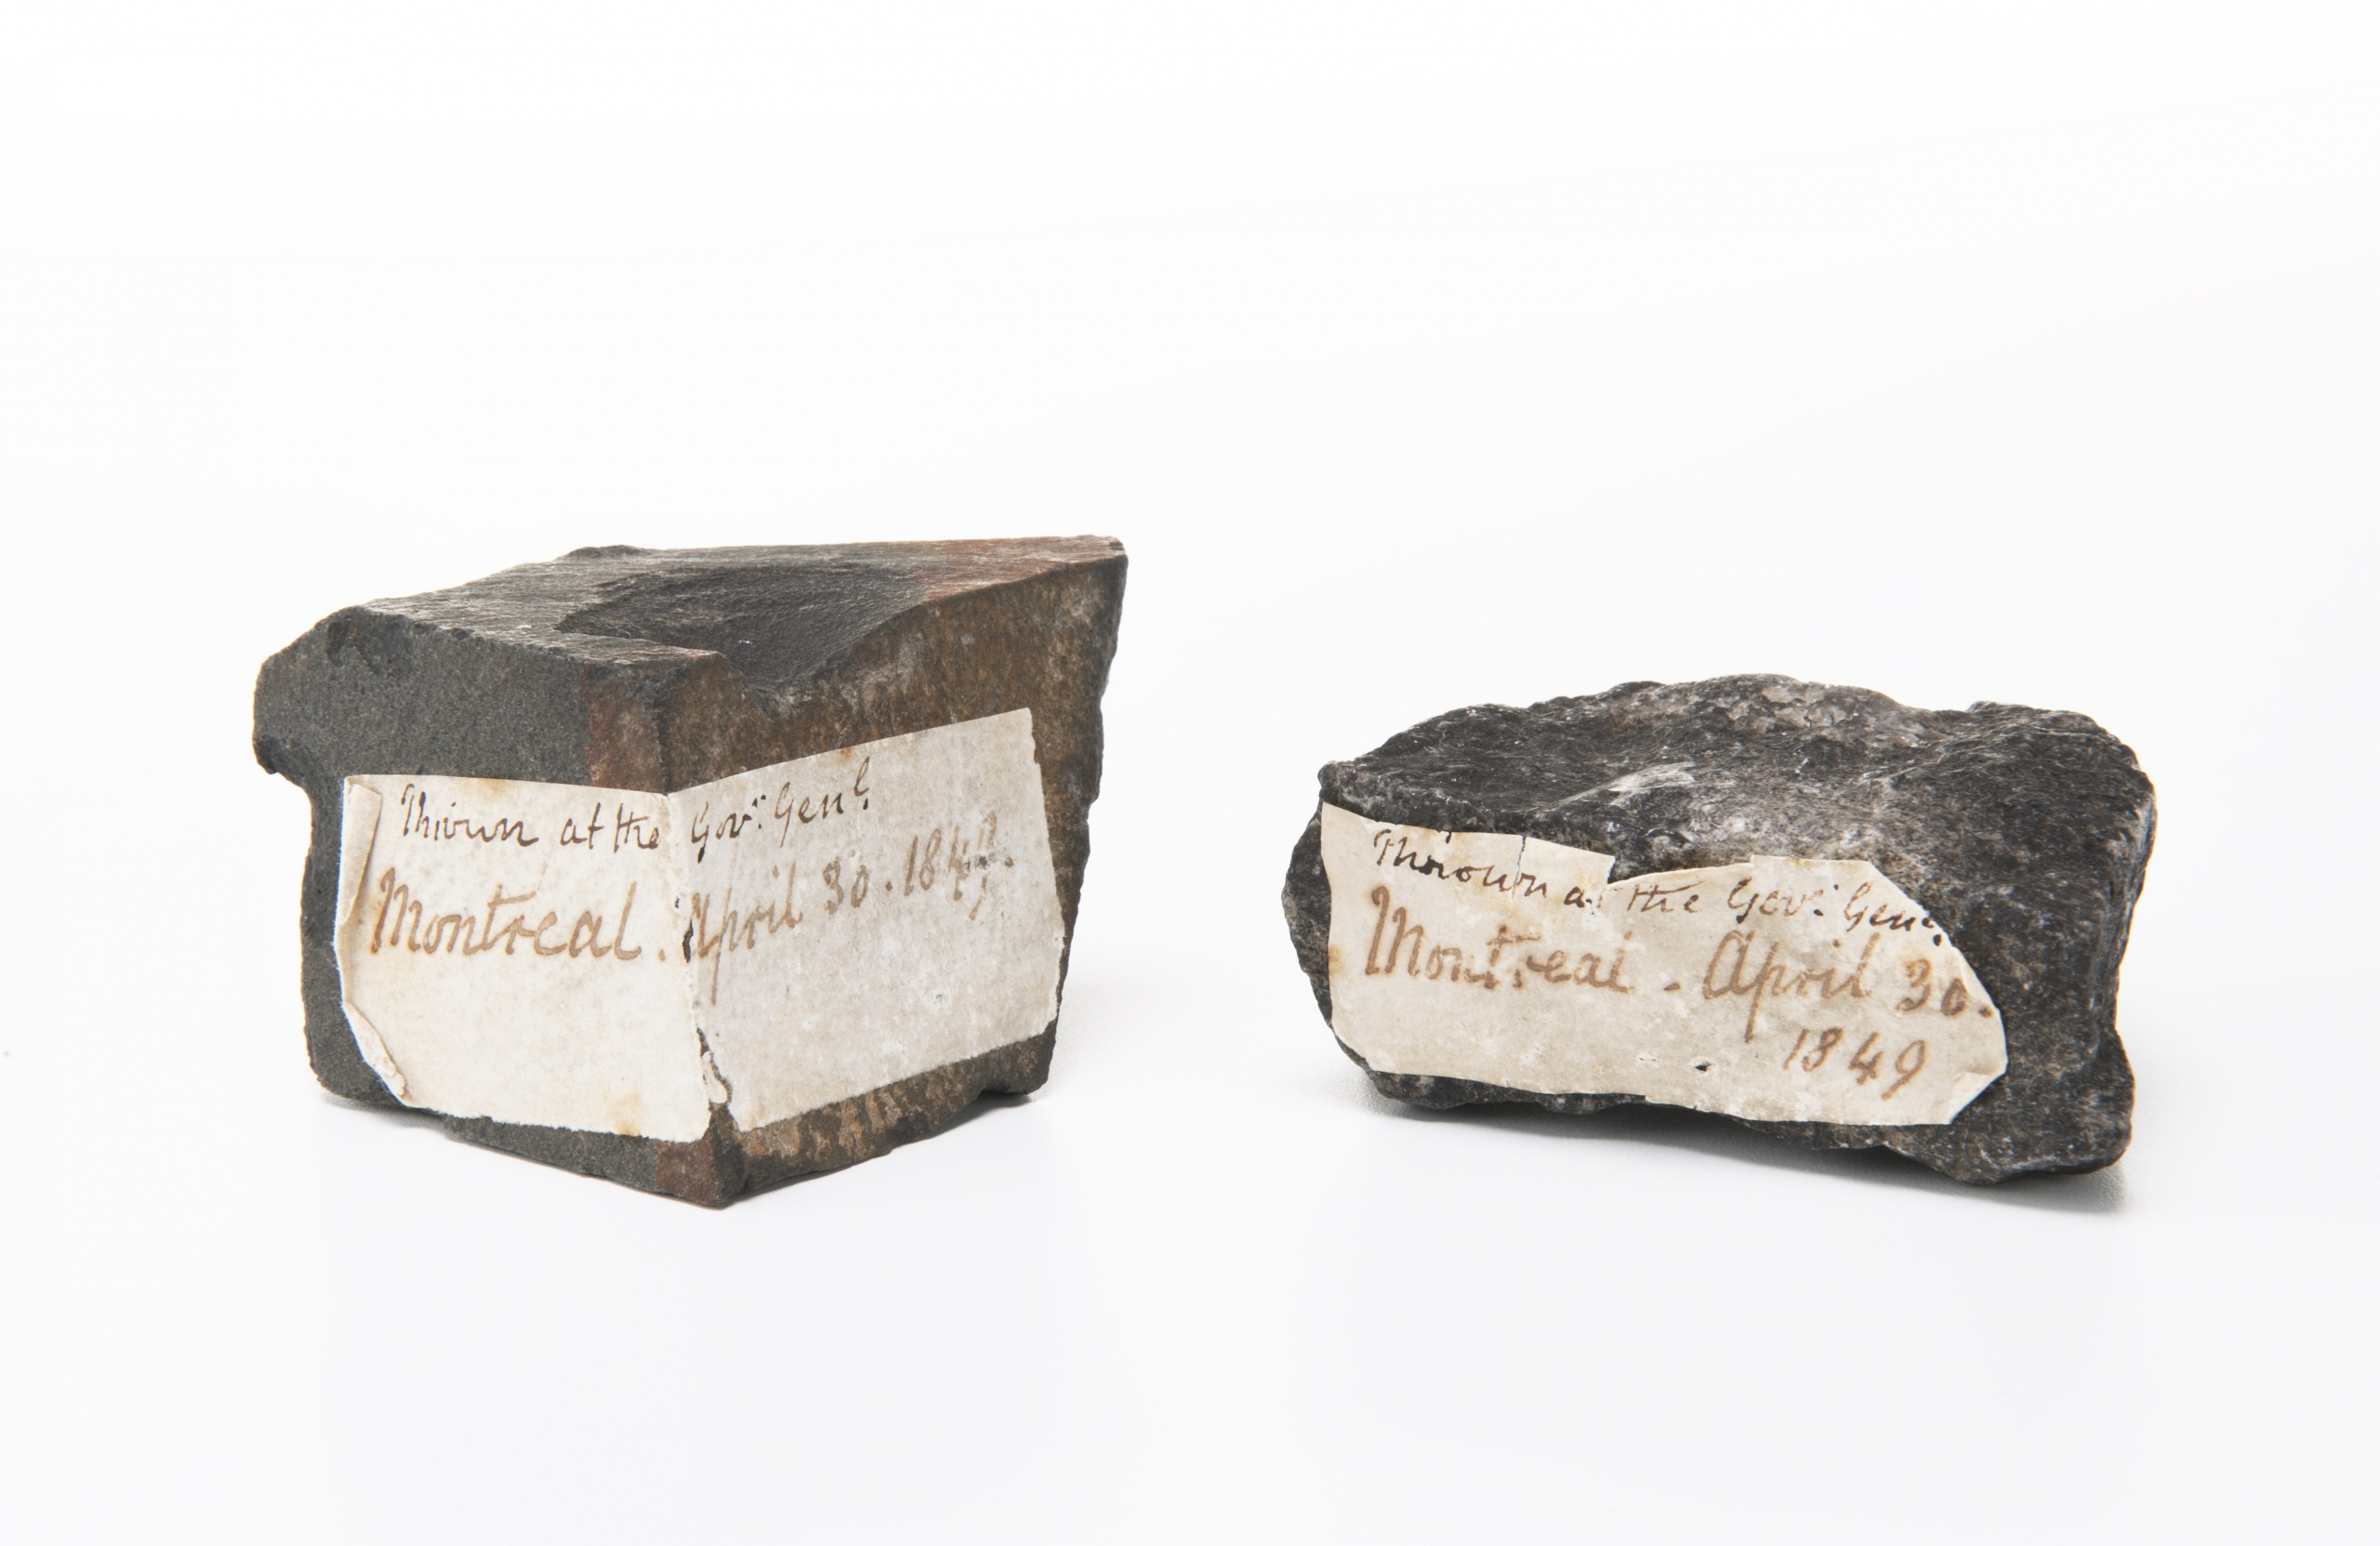 two rocks with dated labels on them.